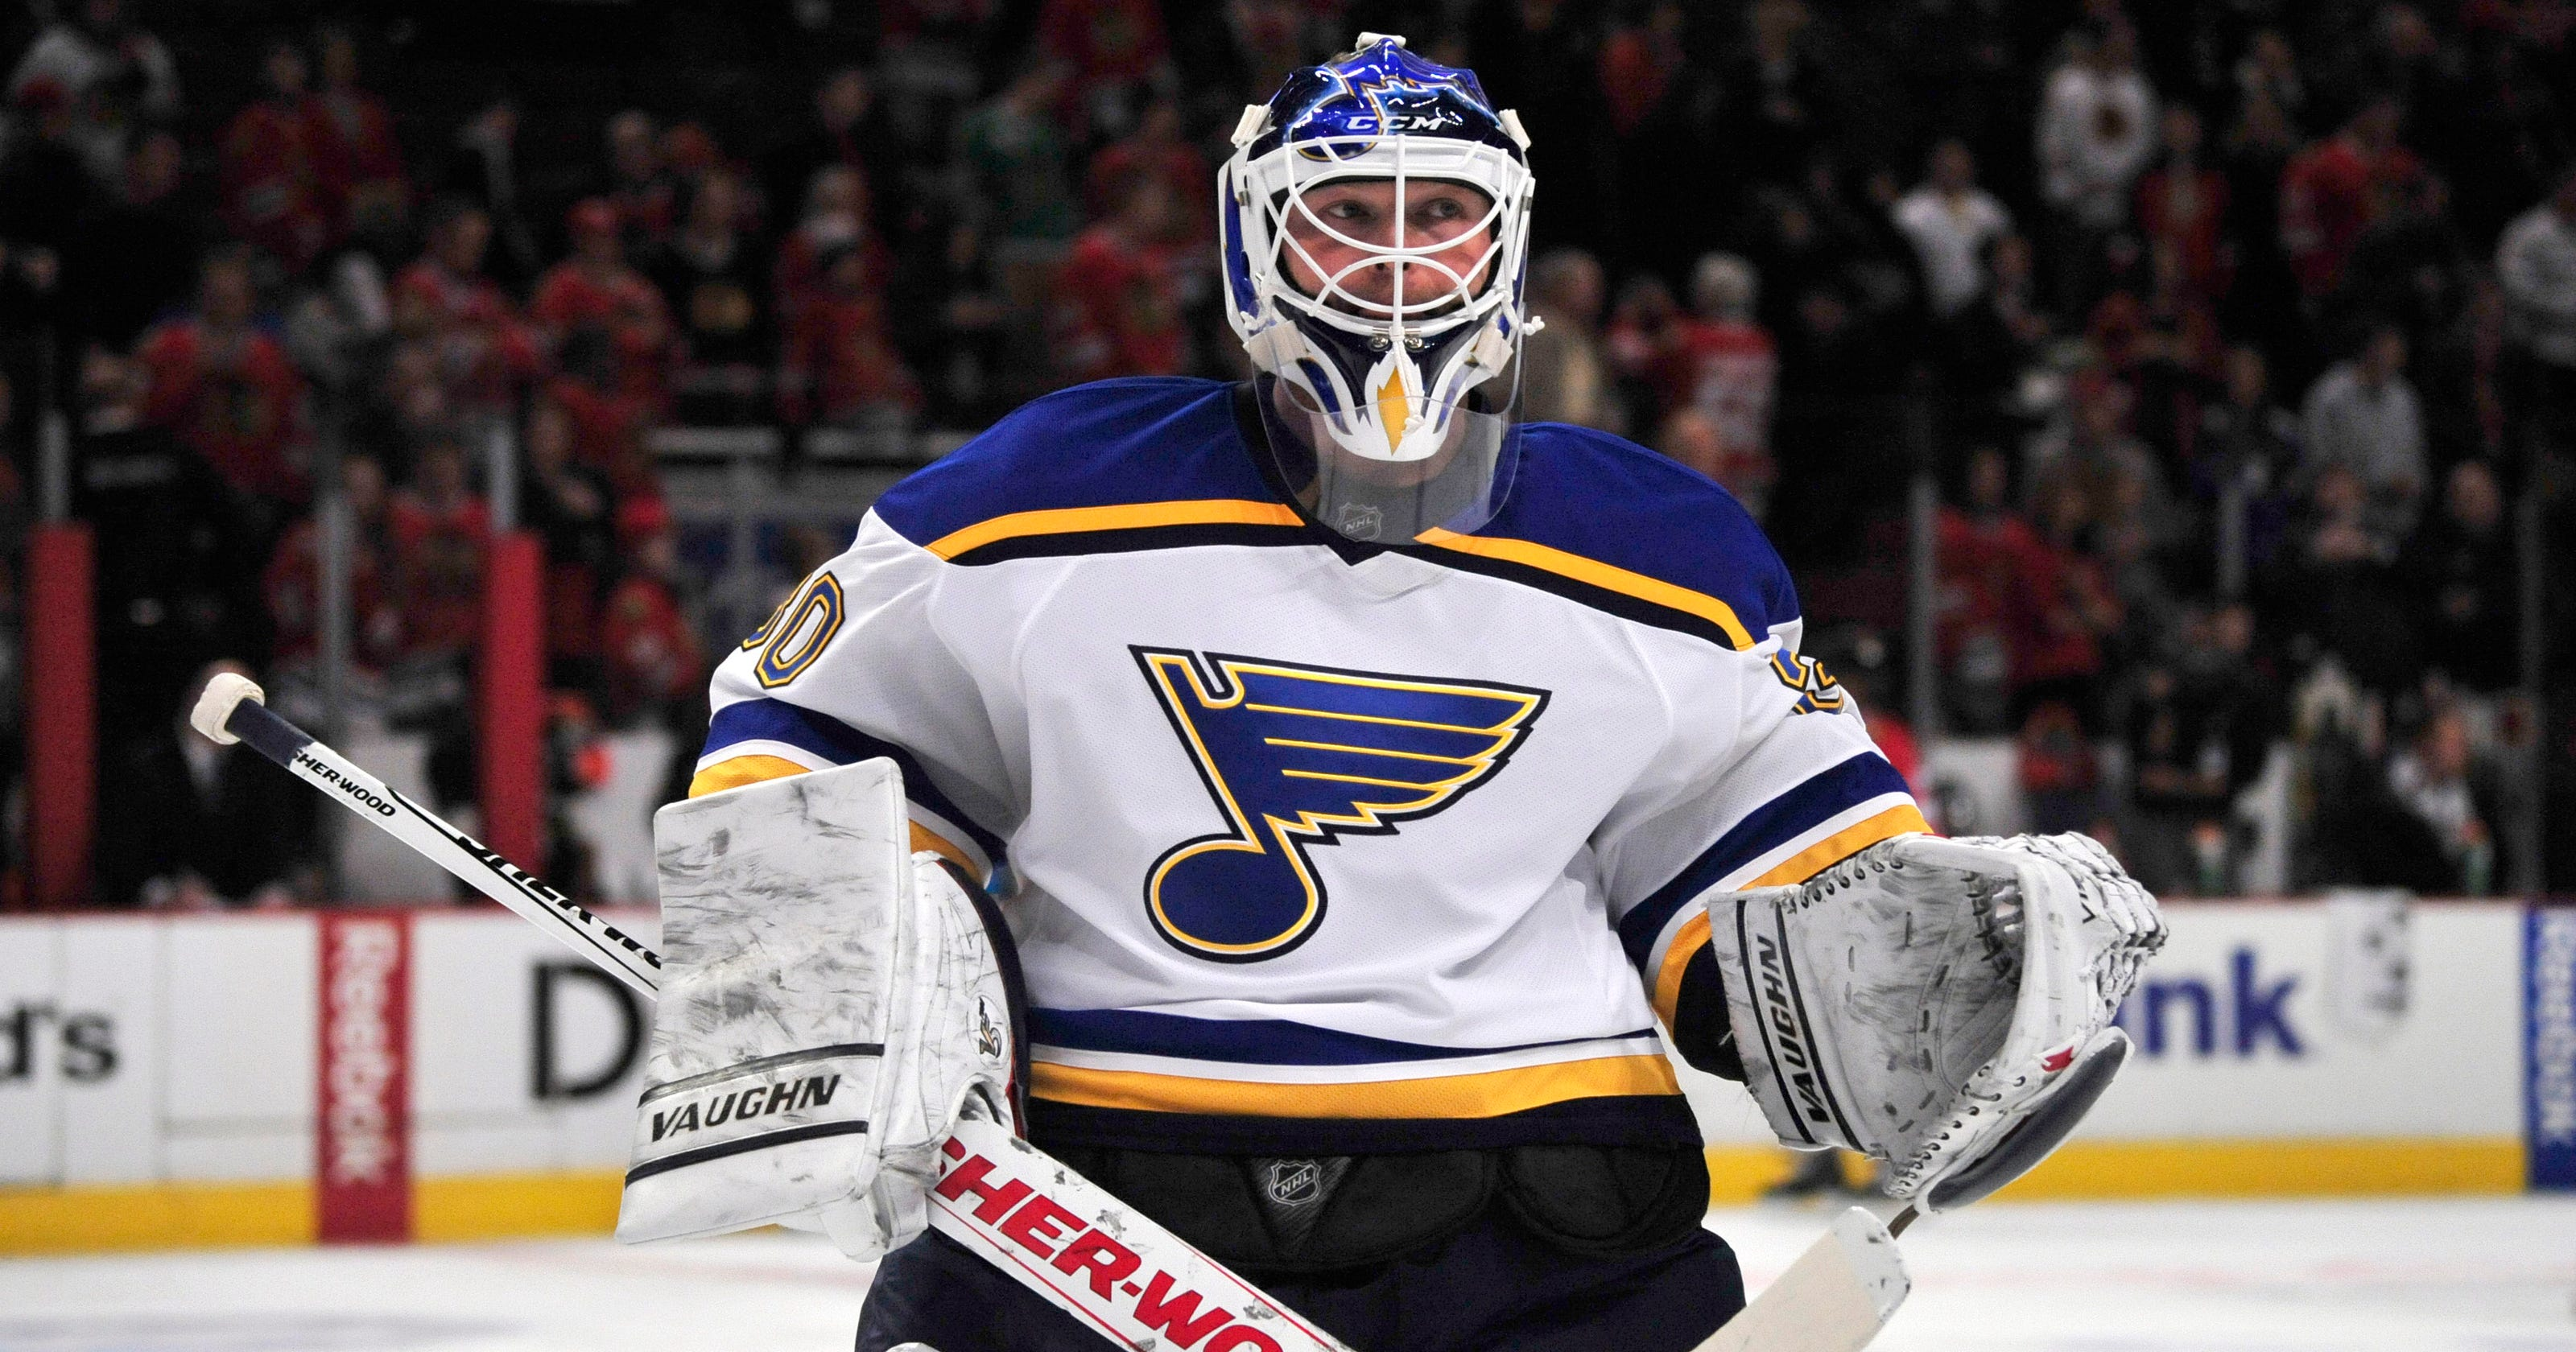 Martin Brodeur Getting His First Start With Blues